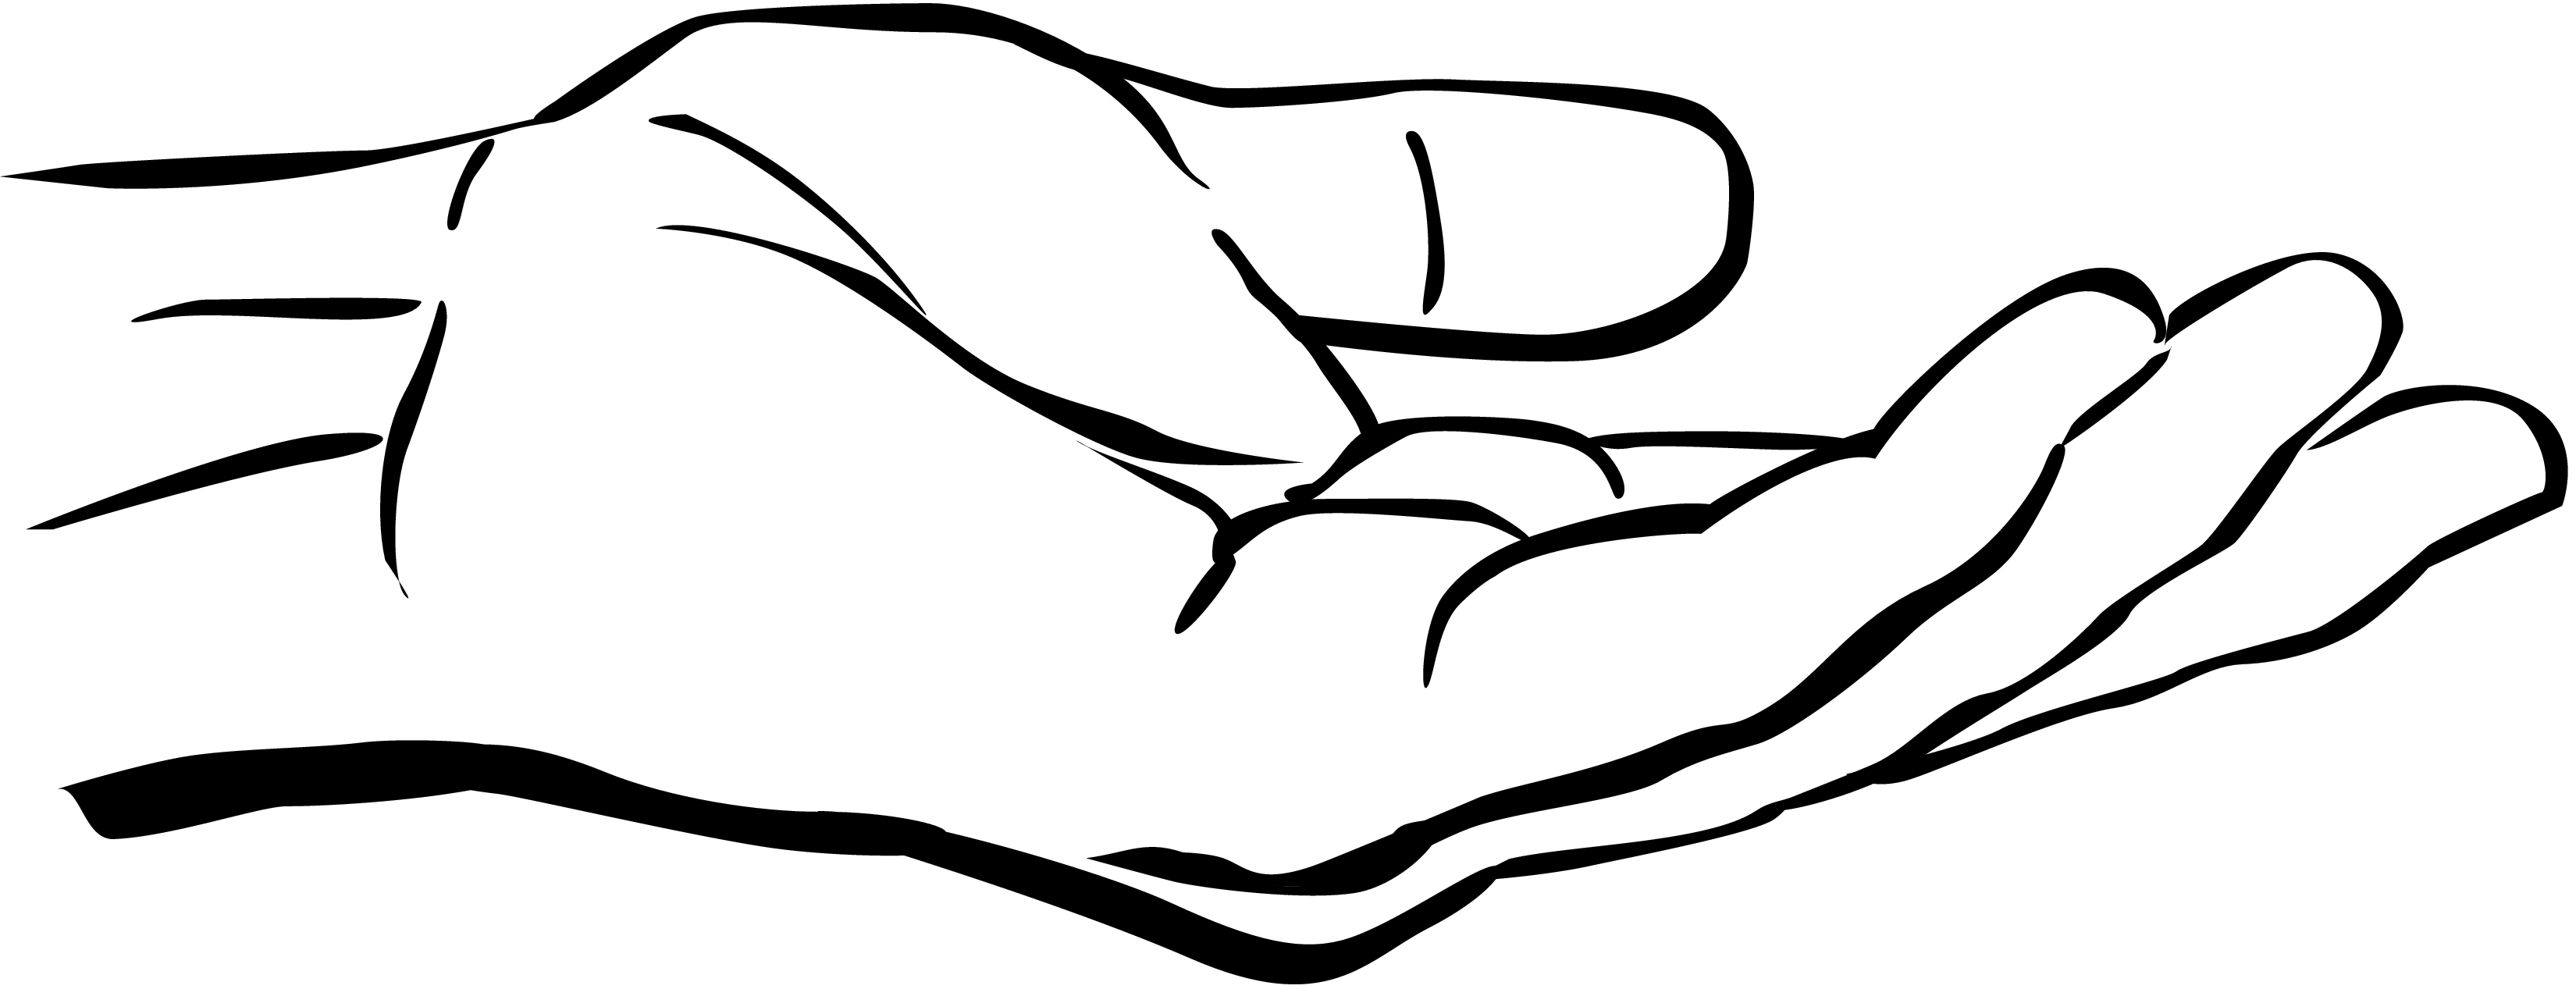 hand image clipart best helping hand clip art insert helping hand clip art insert